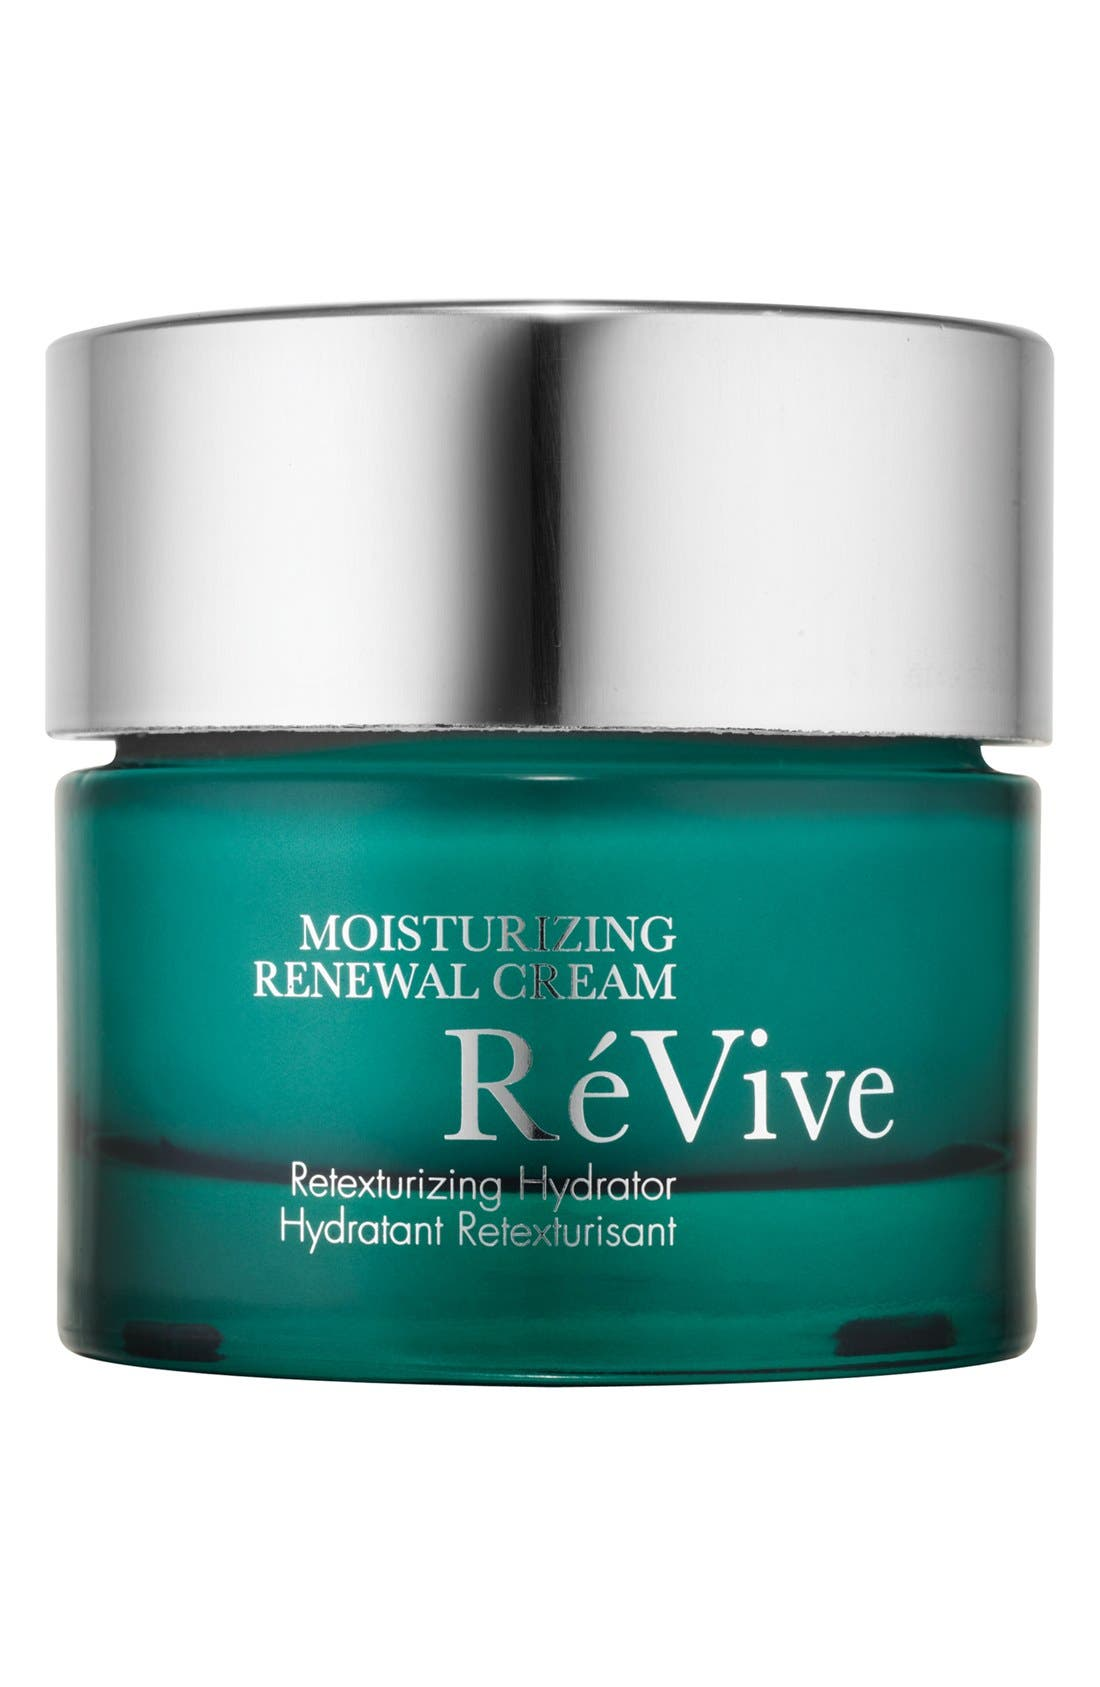 RéVive® Moisturizing Renewal Cream